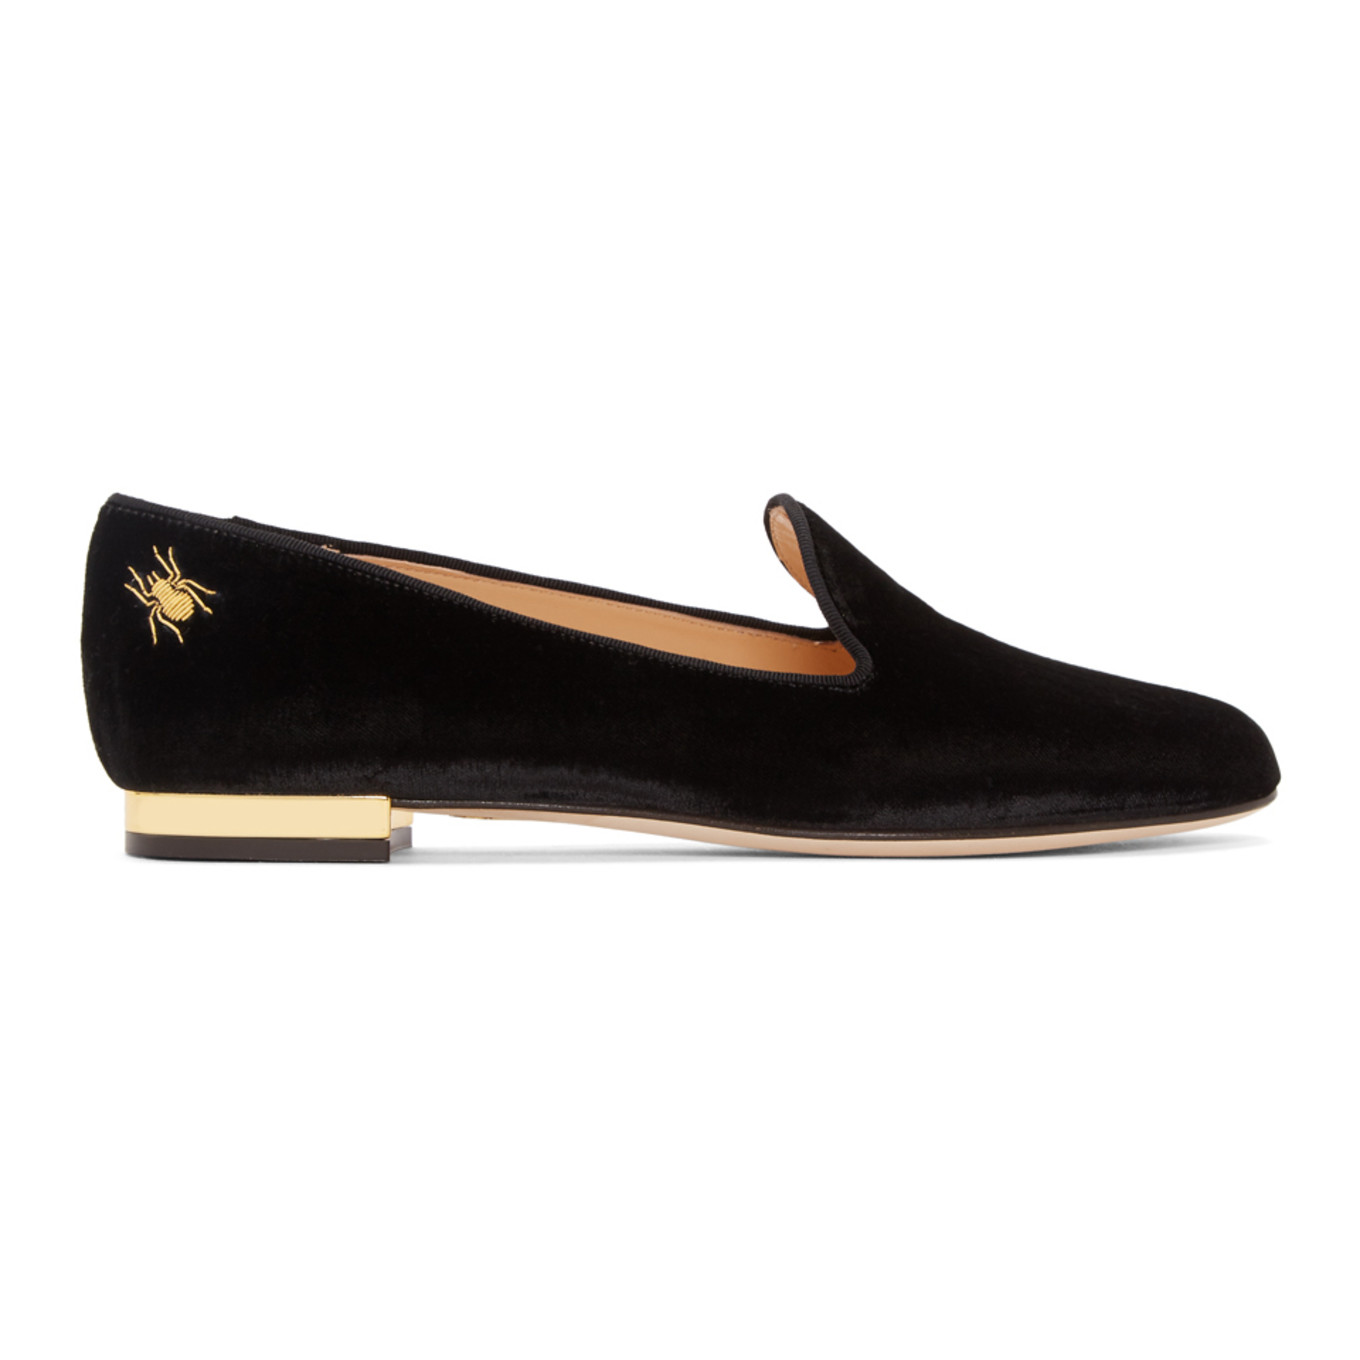 Black Nocturnal Loafers Charlotte Olympia H012t5